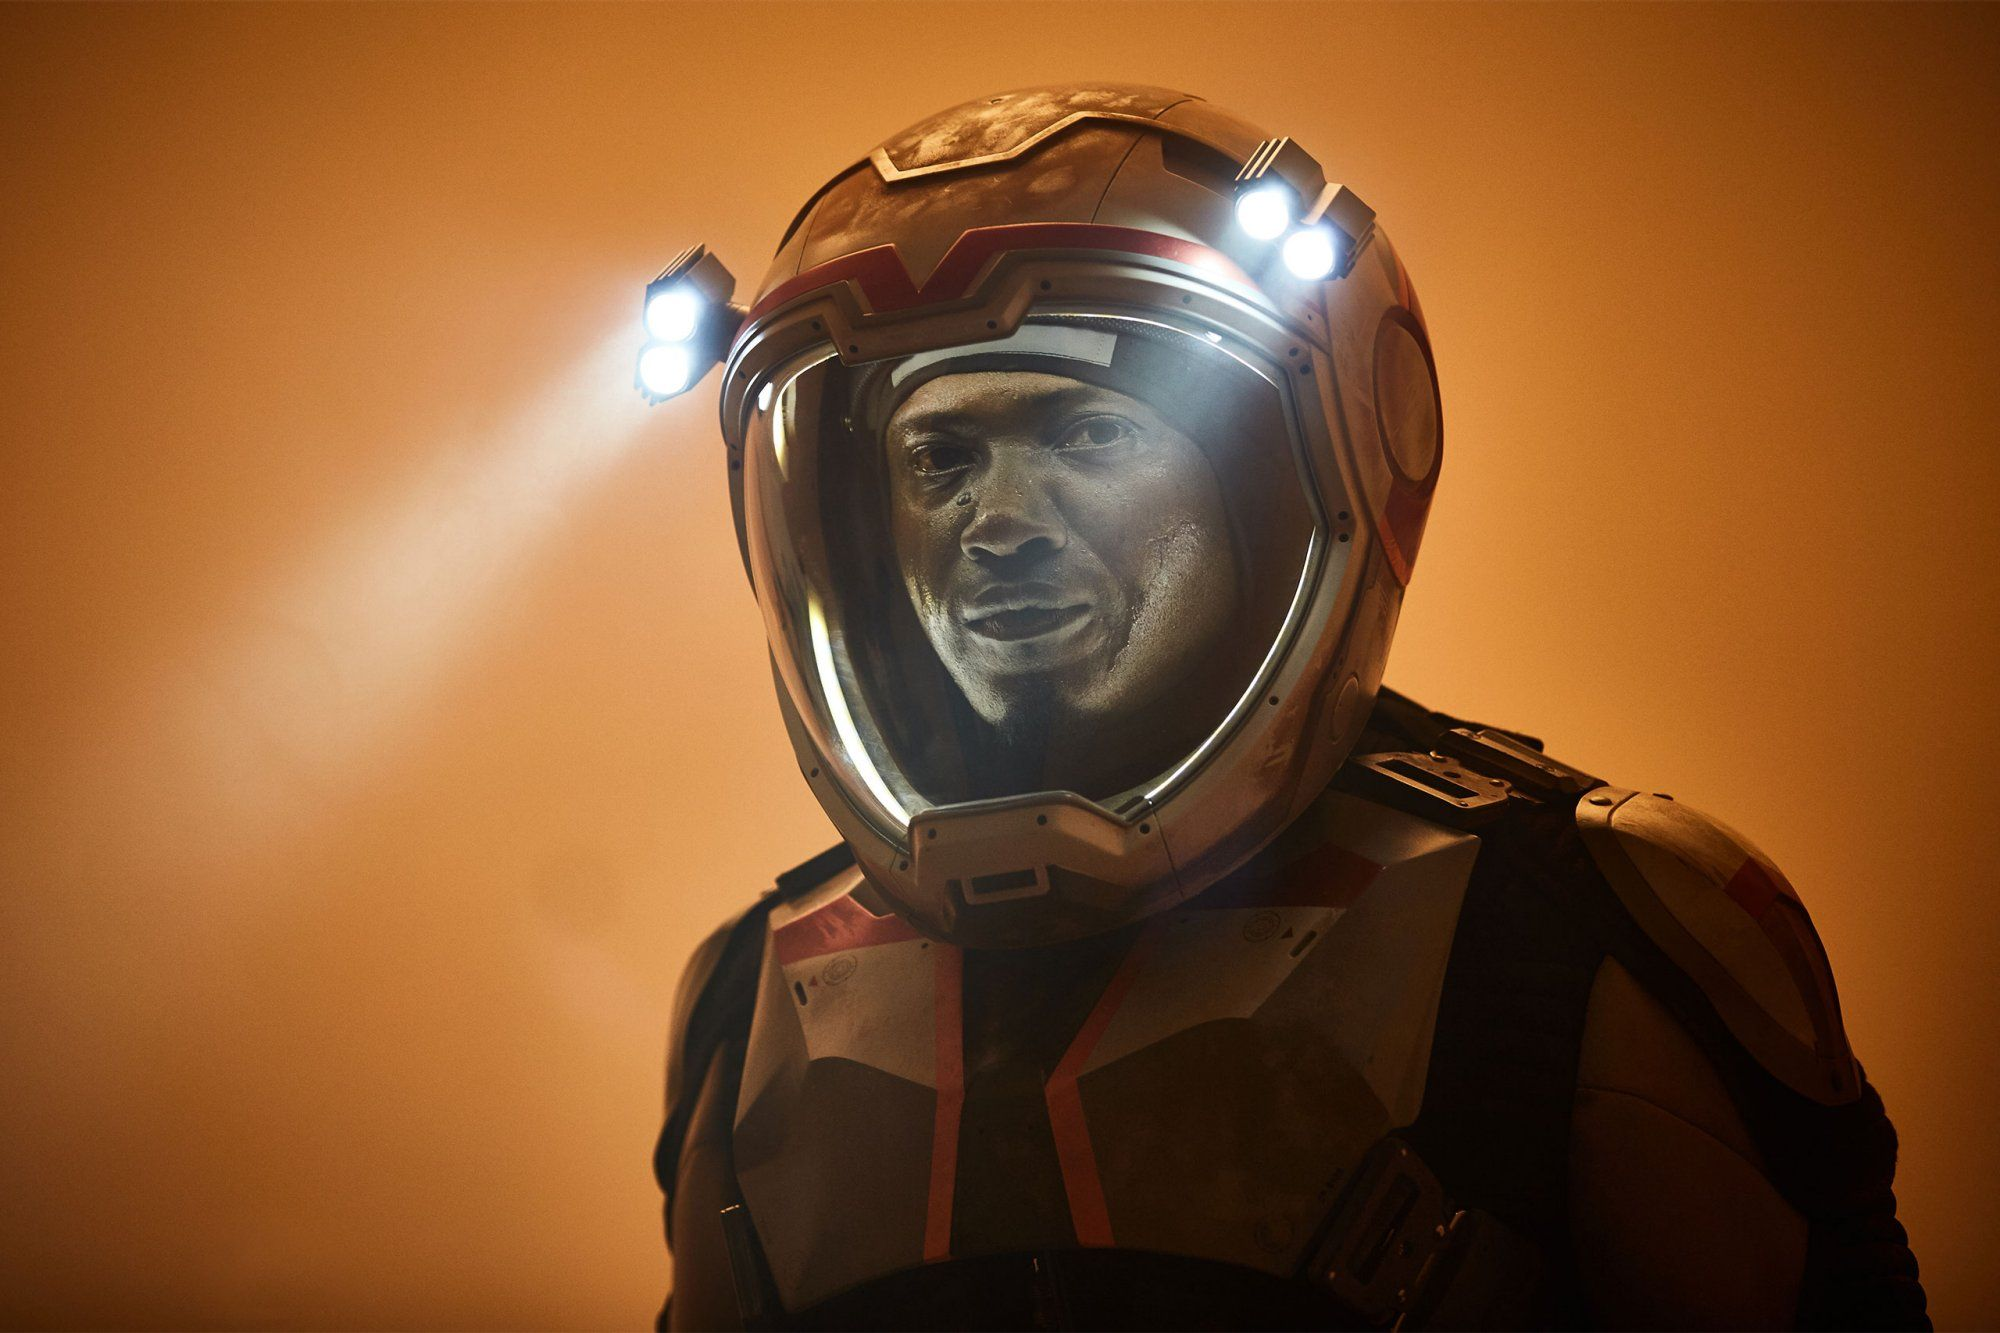 How We Re Actually Going To Mars Inside The Groundbreaking New Tv Series Sammy